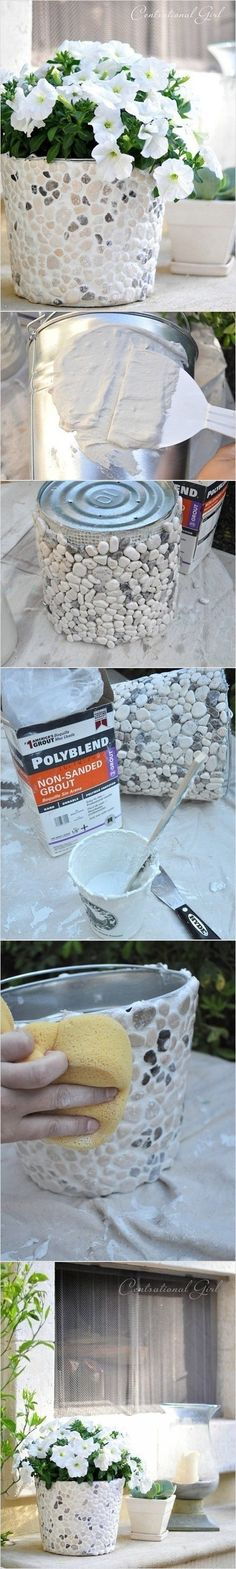 DIY Stone Pots from paint buckets